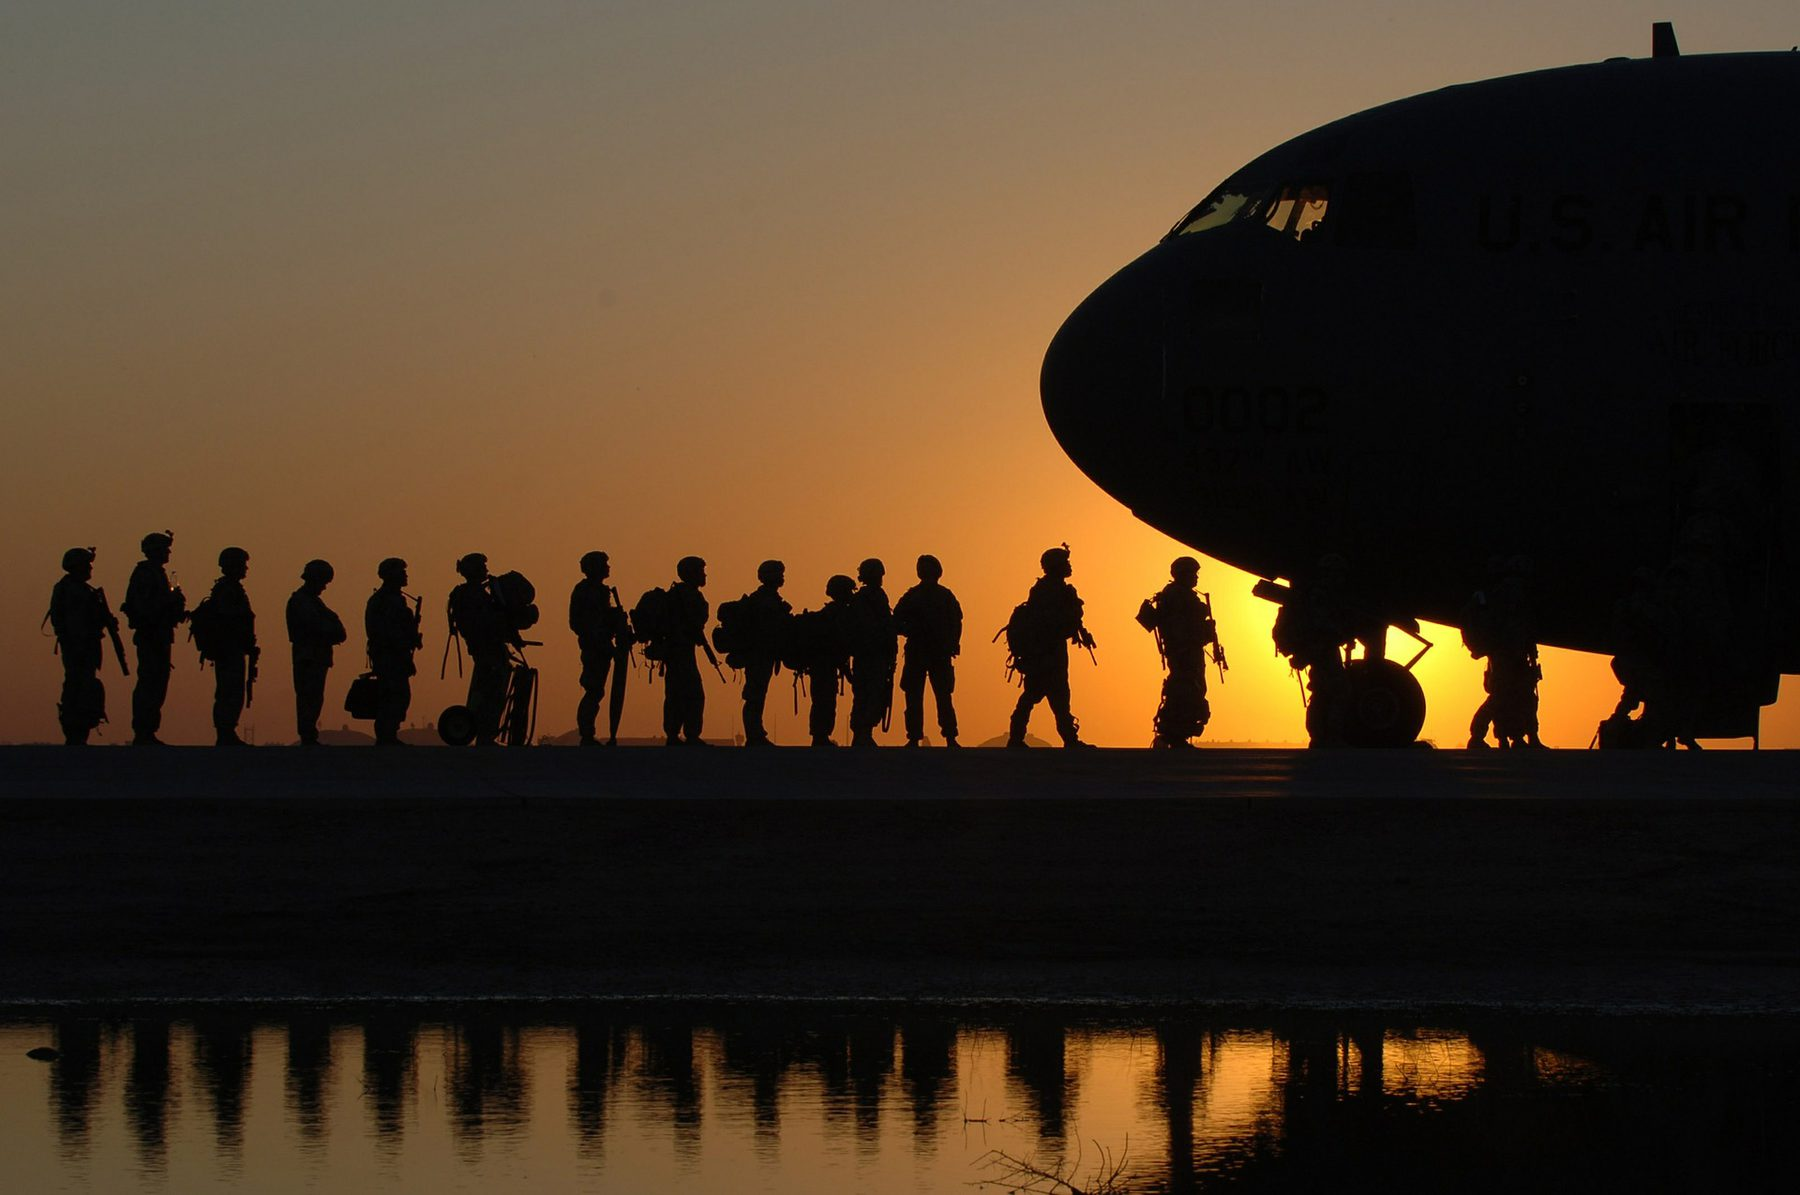 British Army (Sector Header: Infantry Boarding Aircraft)